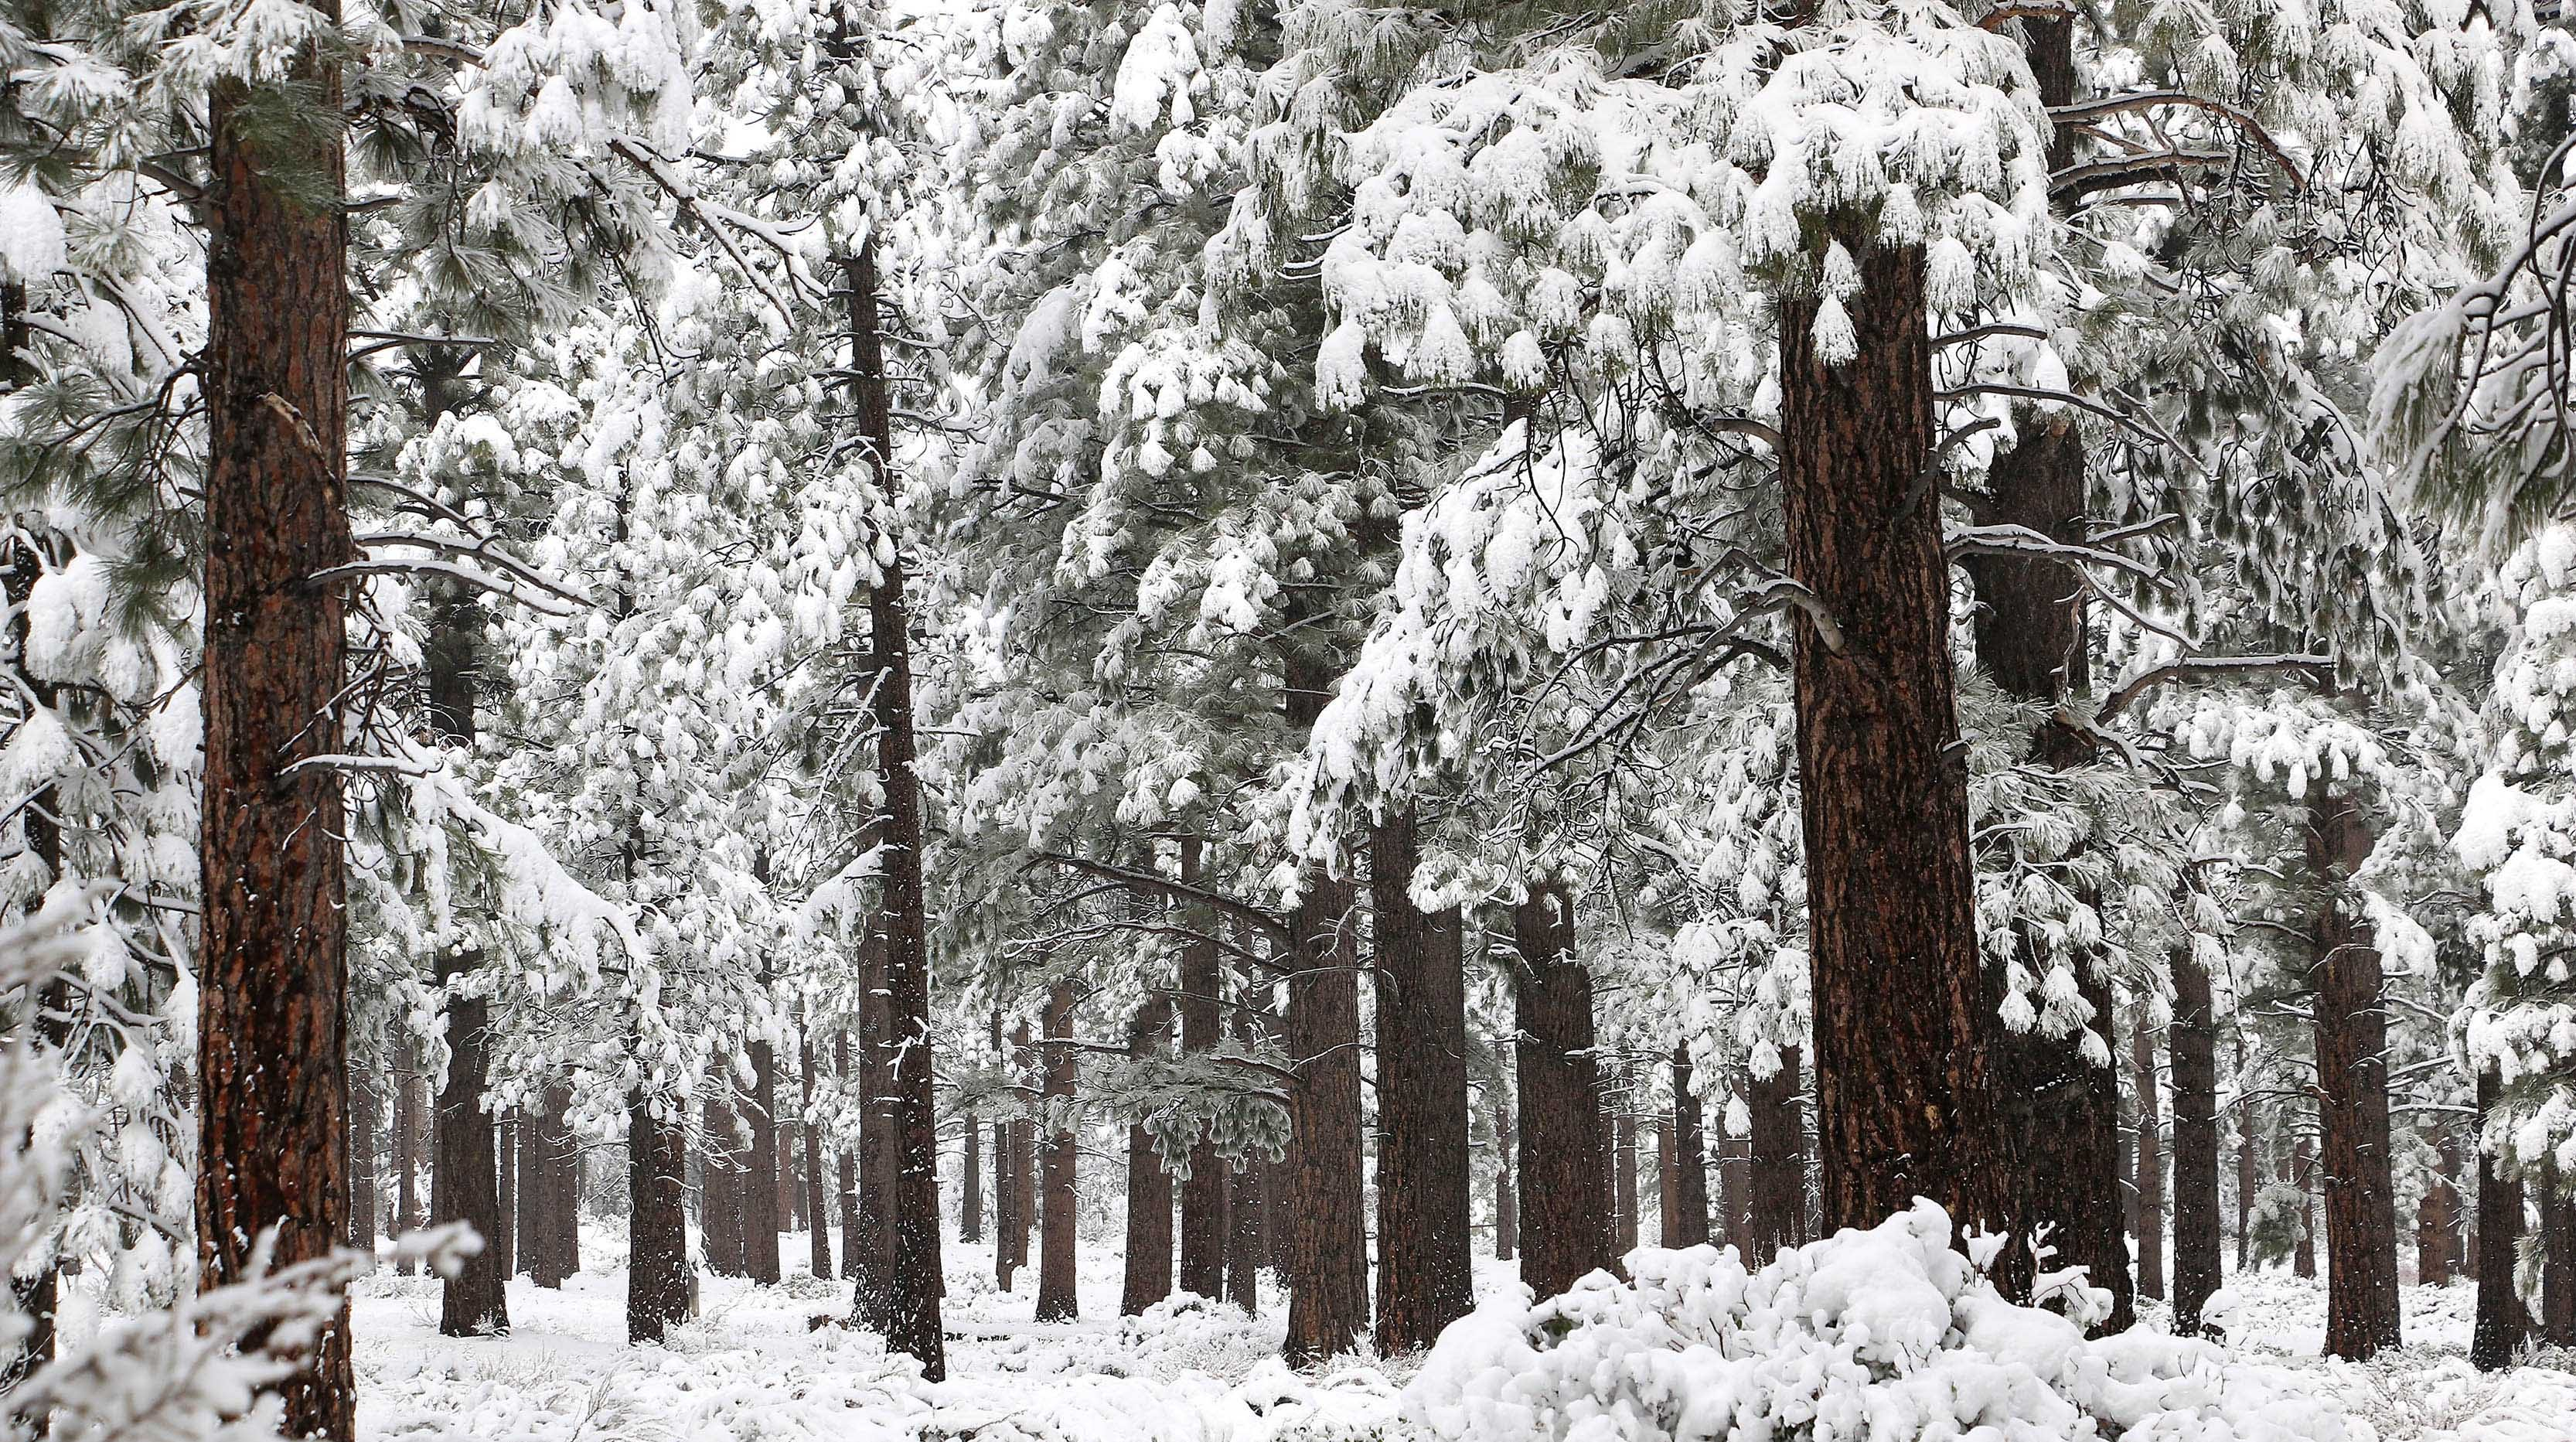 Snow has already made a landing this season. Some light, some heavy, but all fun to look at and admire. Enjoy this gallery of a winter wonderland, like this photo of fresh snow seen along the Mt. Rose Highway near Reno, N.V. on Nov. 29, 2018.